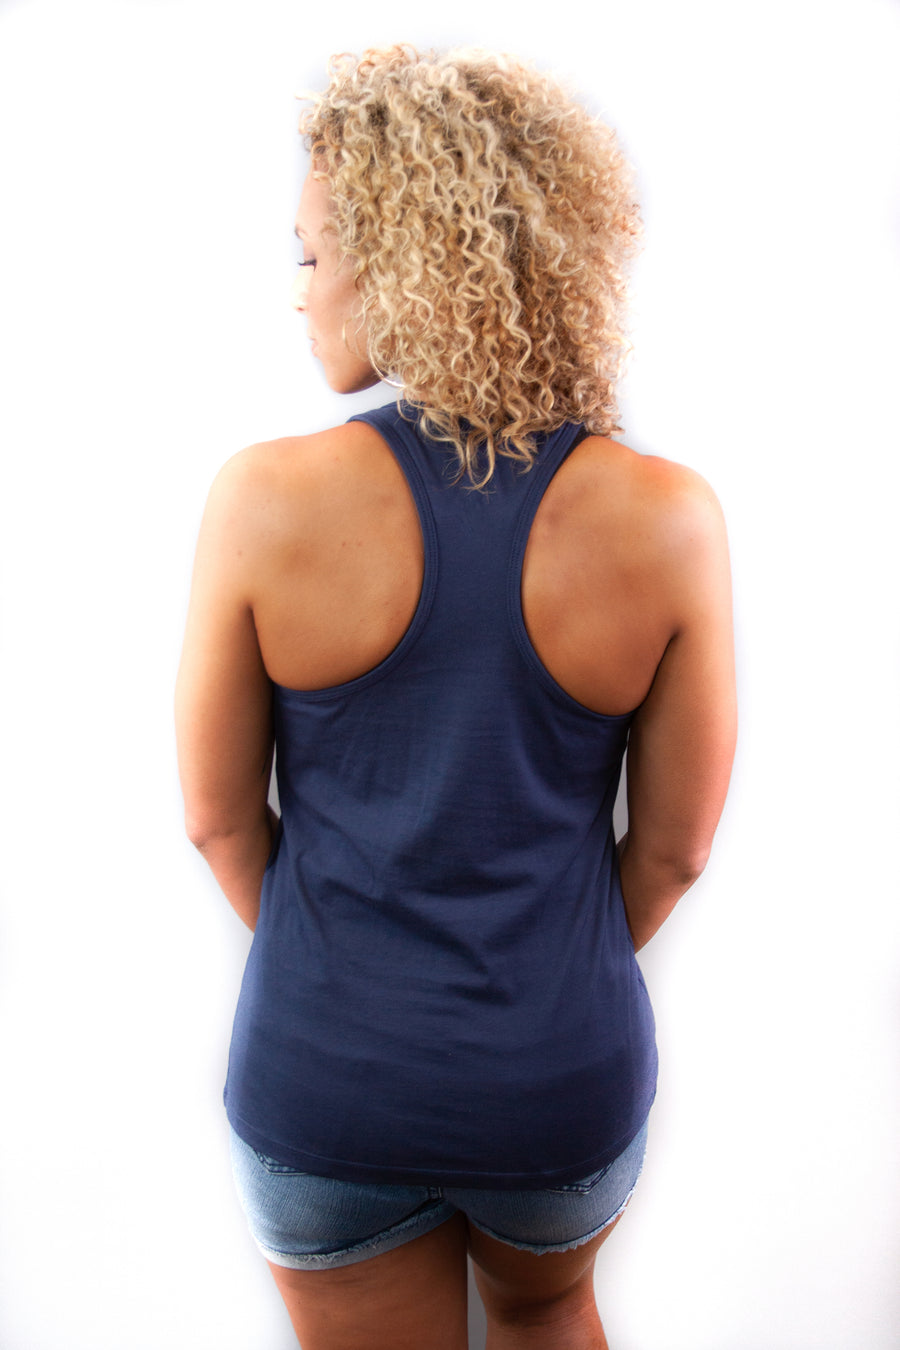 Women's Racerback Tank - Made In The USA Navy/Tan